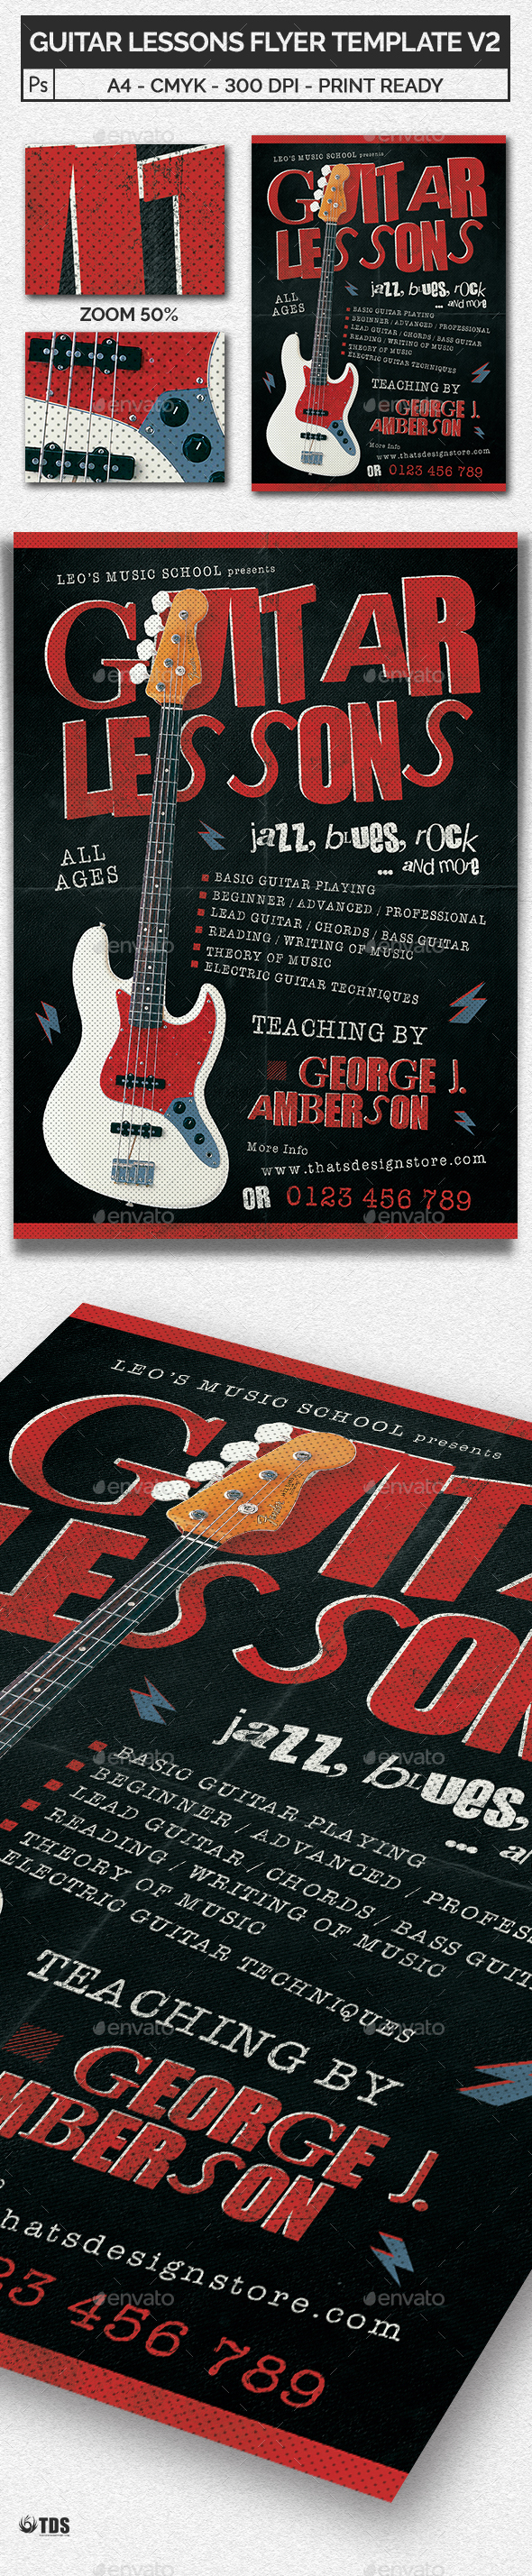 GraphicRiver Guitar Lessons Flyer Template V2 20525394